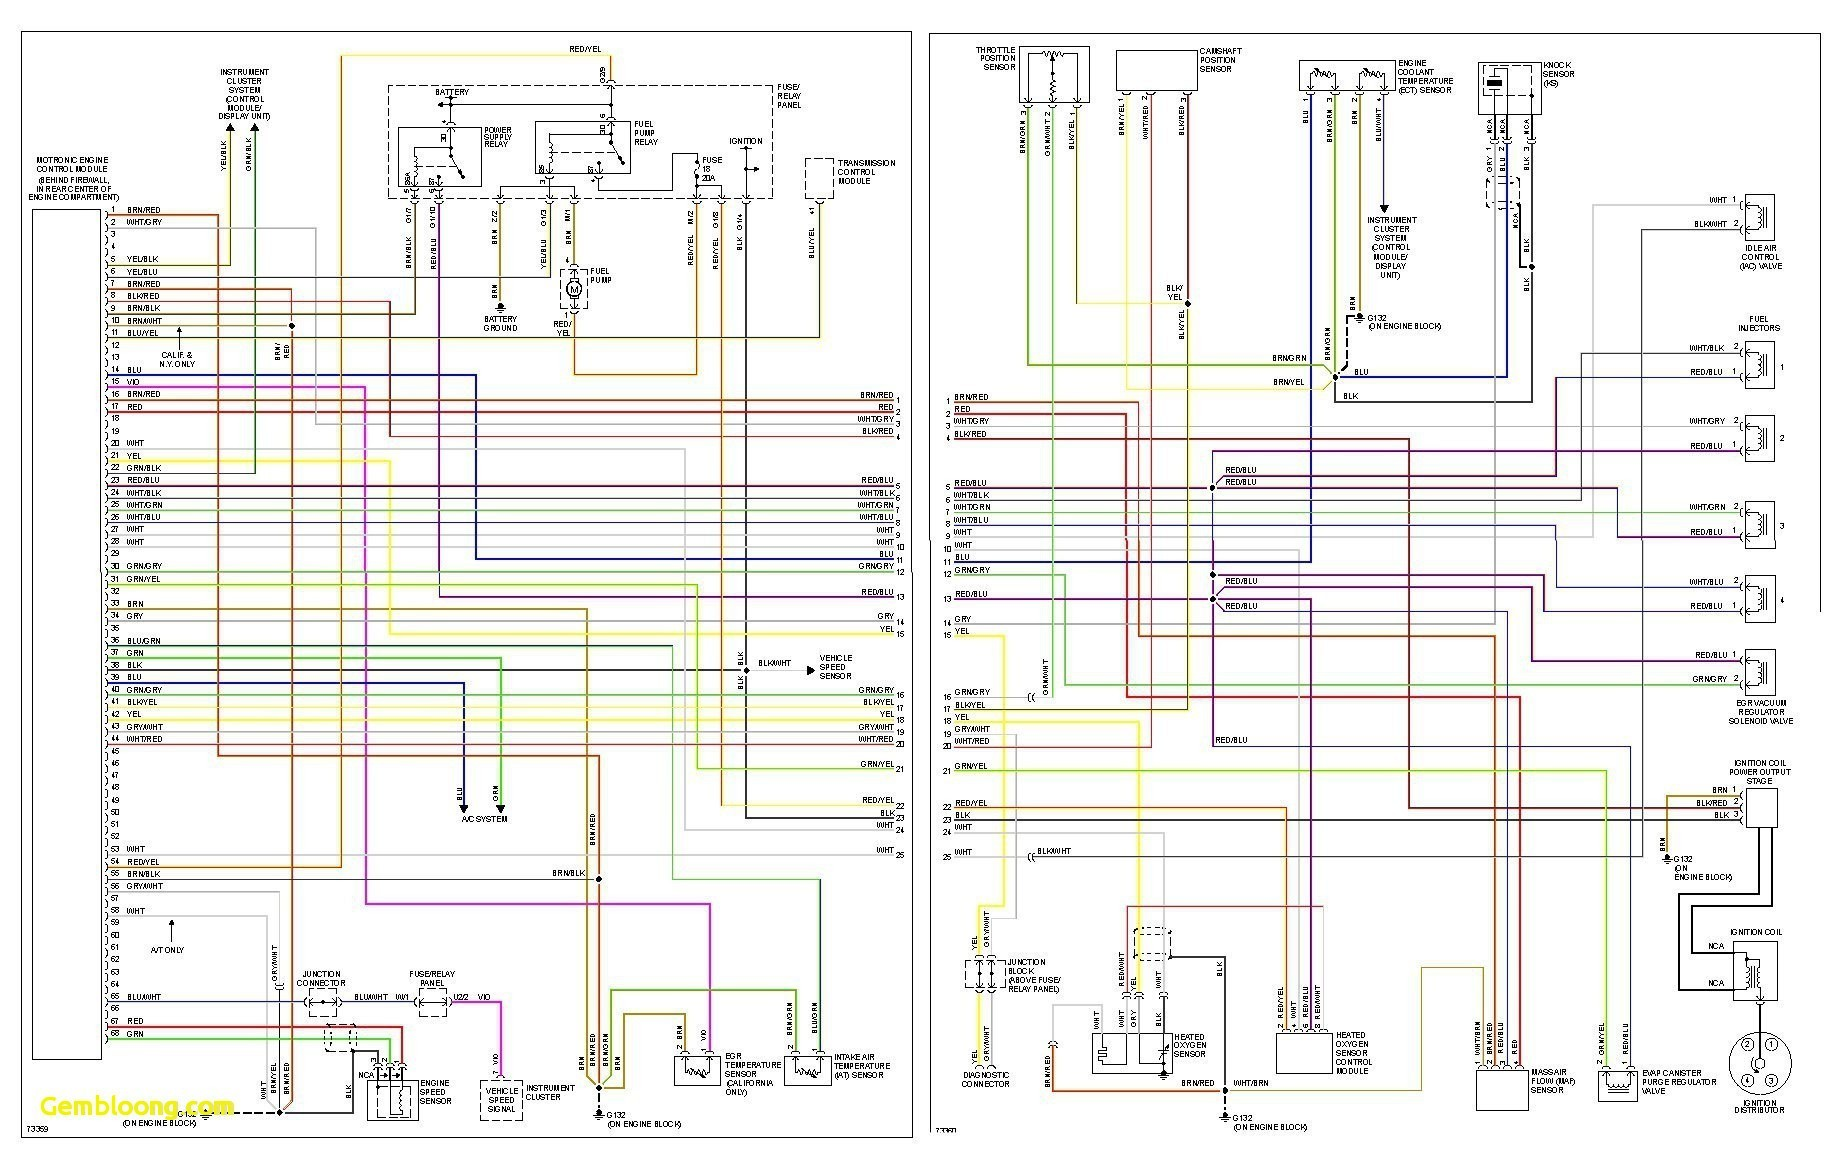 2005 Vw Jetta Wiring Harness Diagram Wiring Diagrams Post Tame Park A Tame Park A Michelegori It